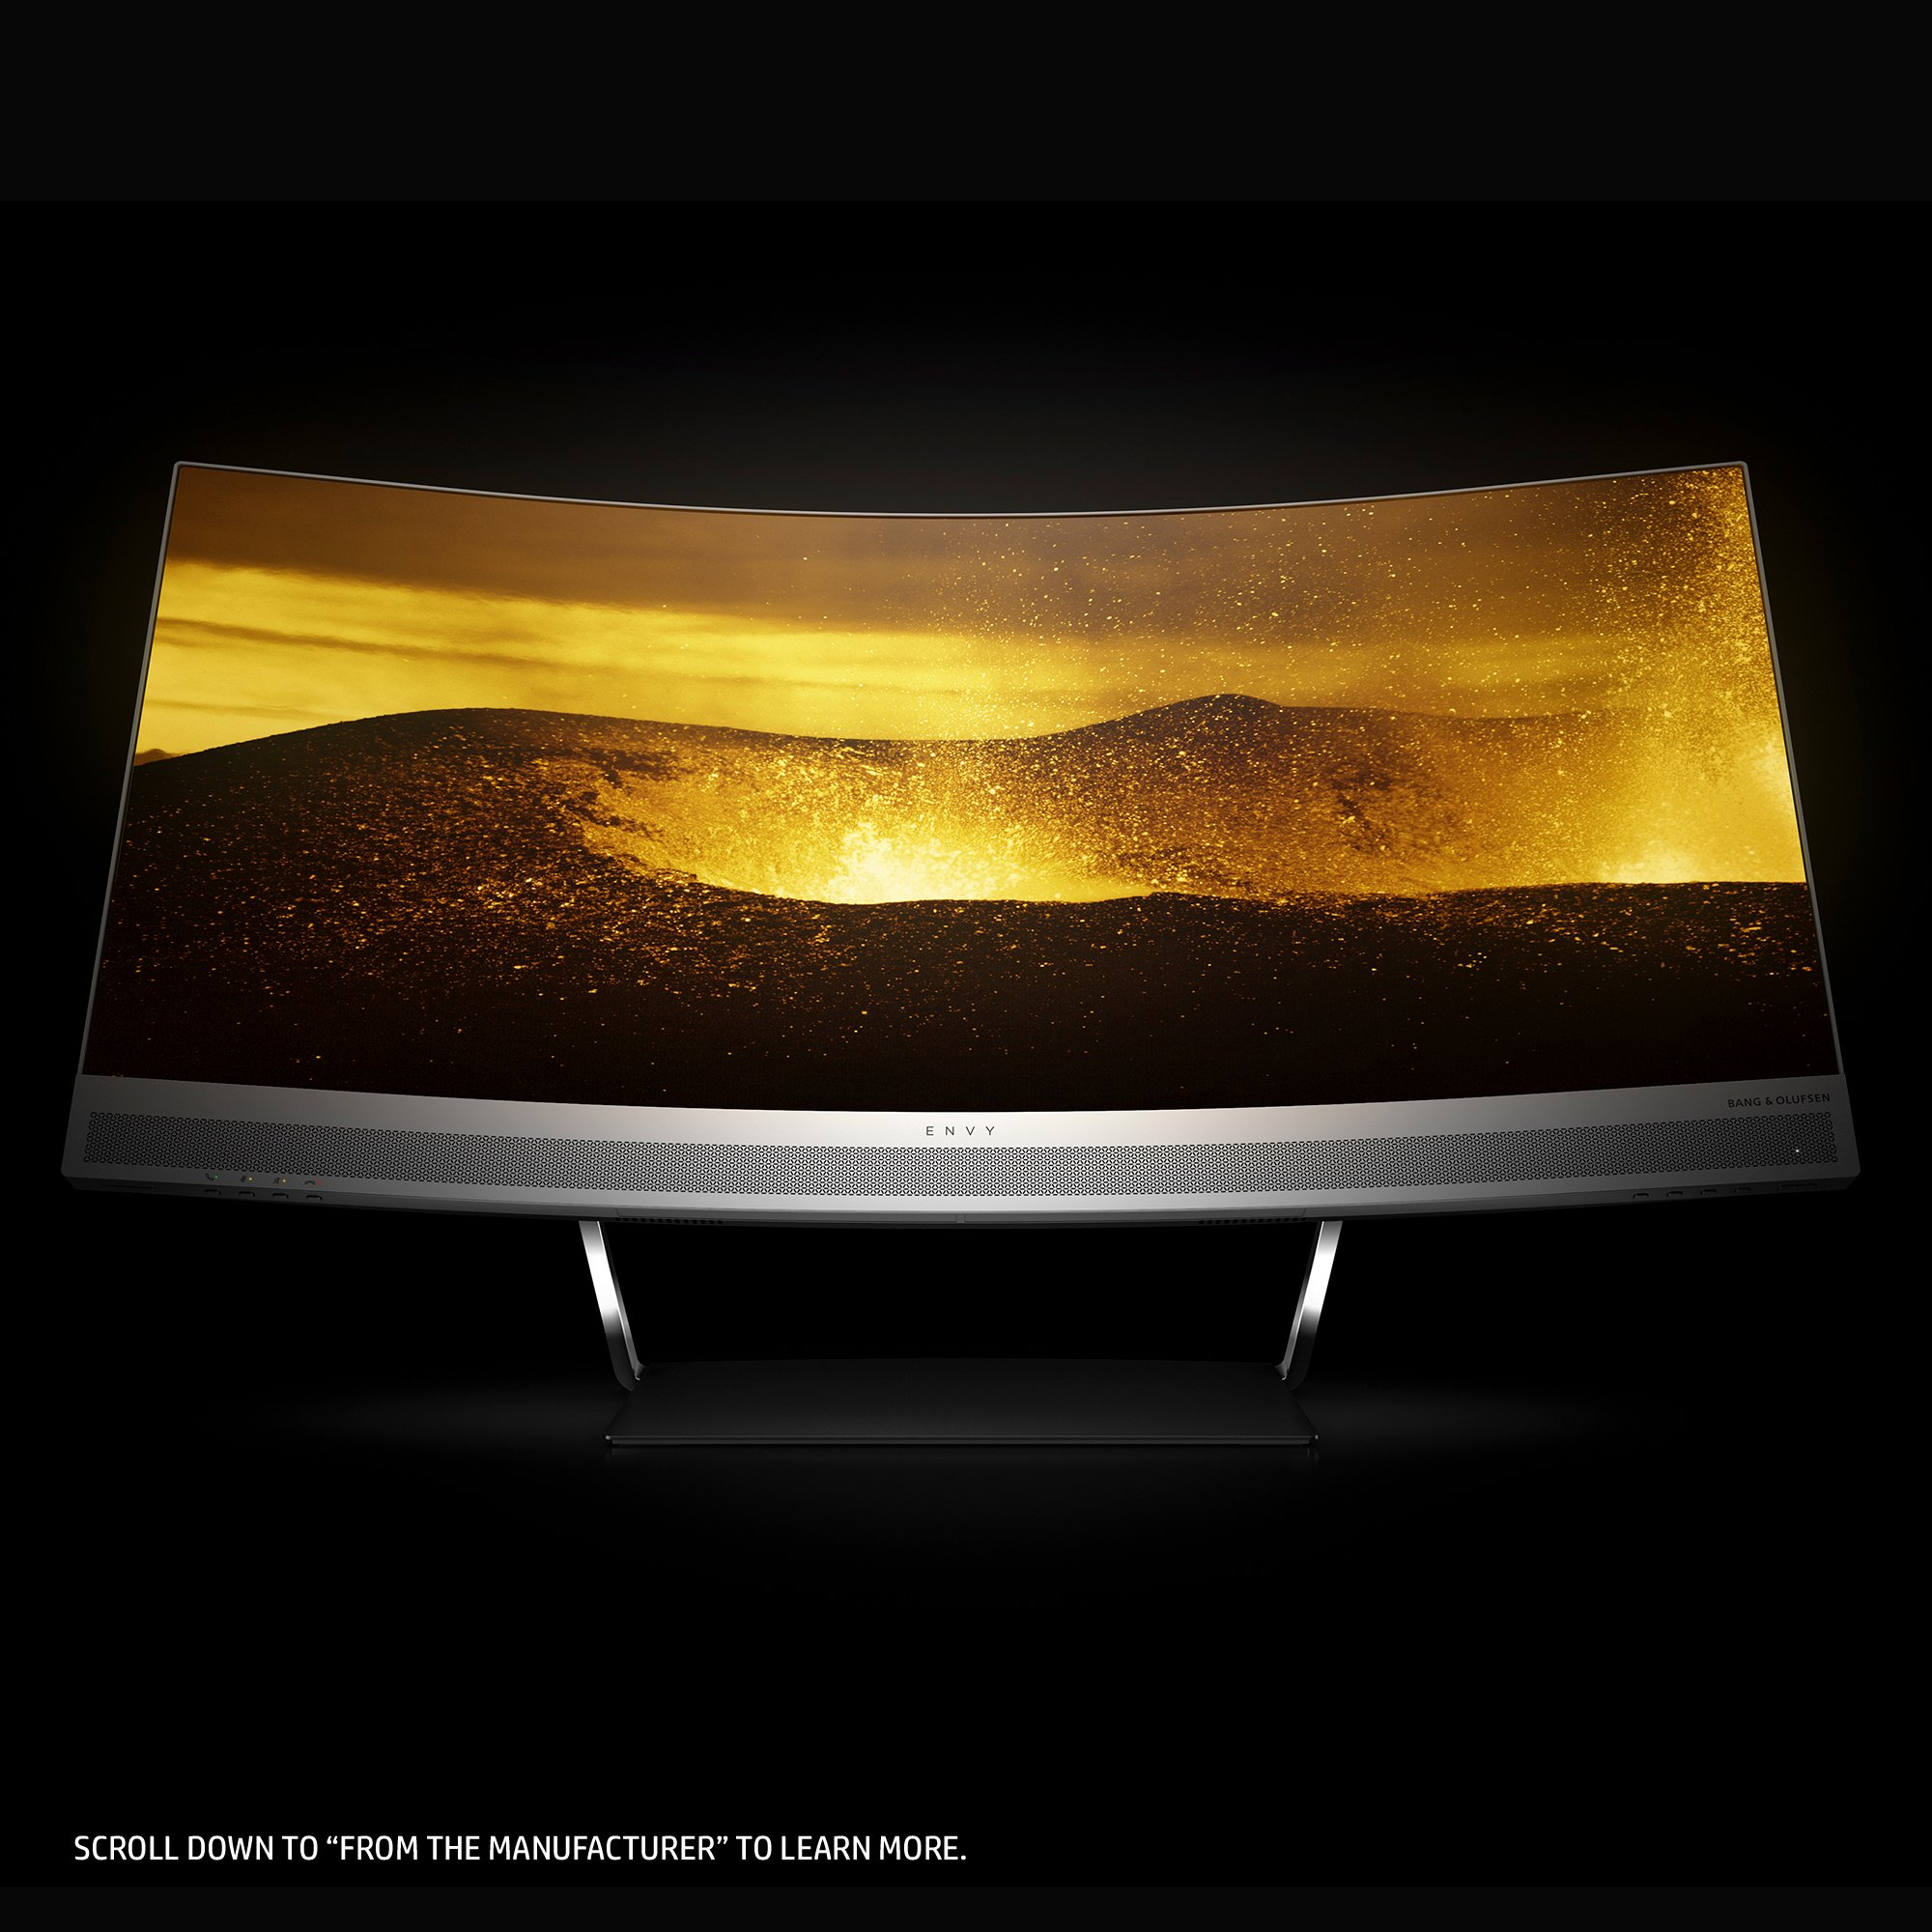 HP ENVY 34-inch Ultra WQHD Curved Monitor with AMD Freesync Technology, Webcam and Audio by Bang & Olufsen (Black/Silver) by HP (Image #7)